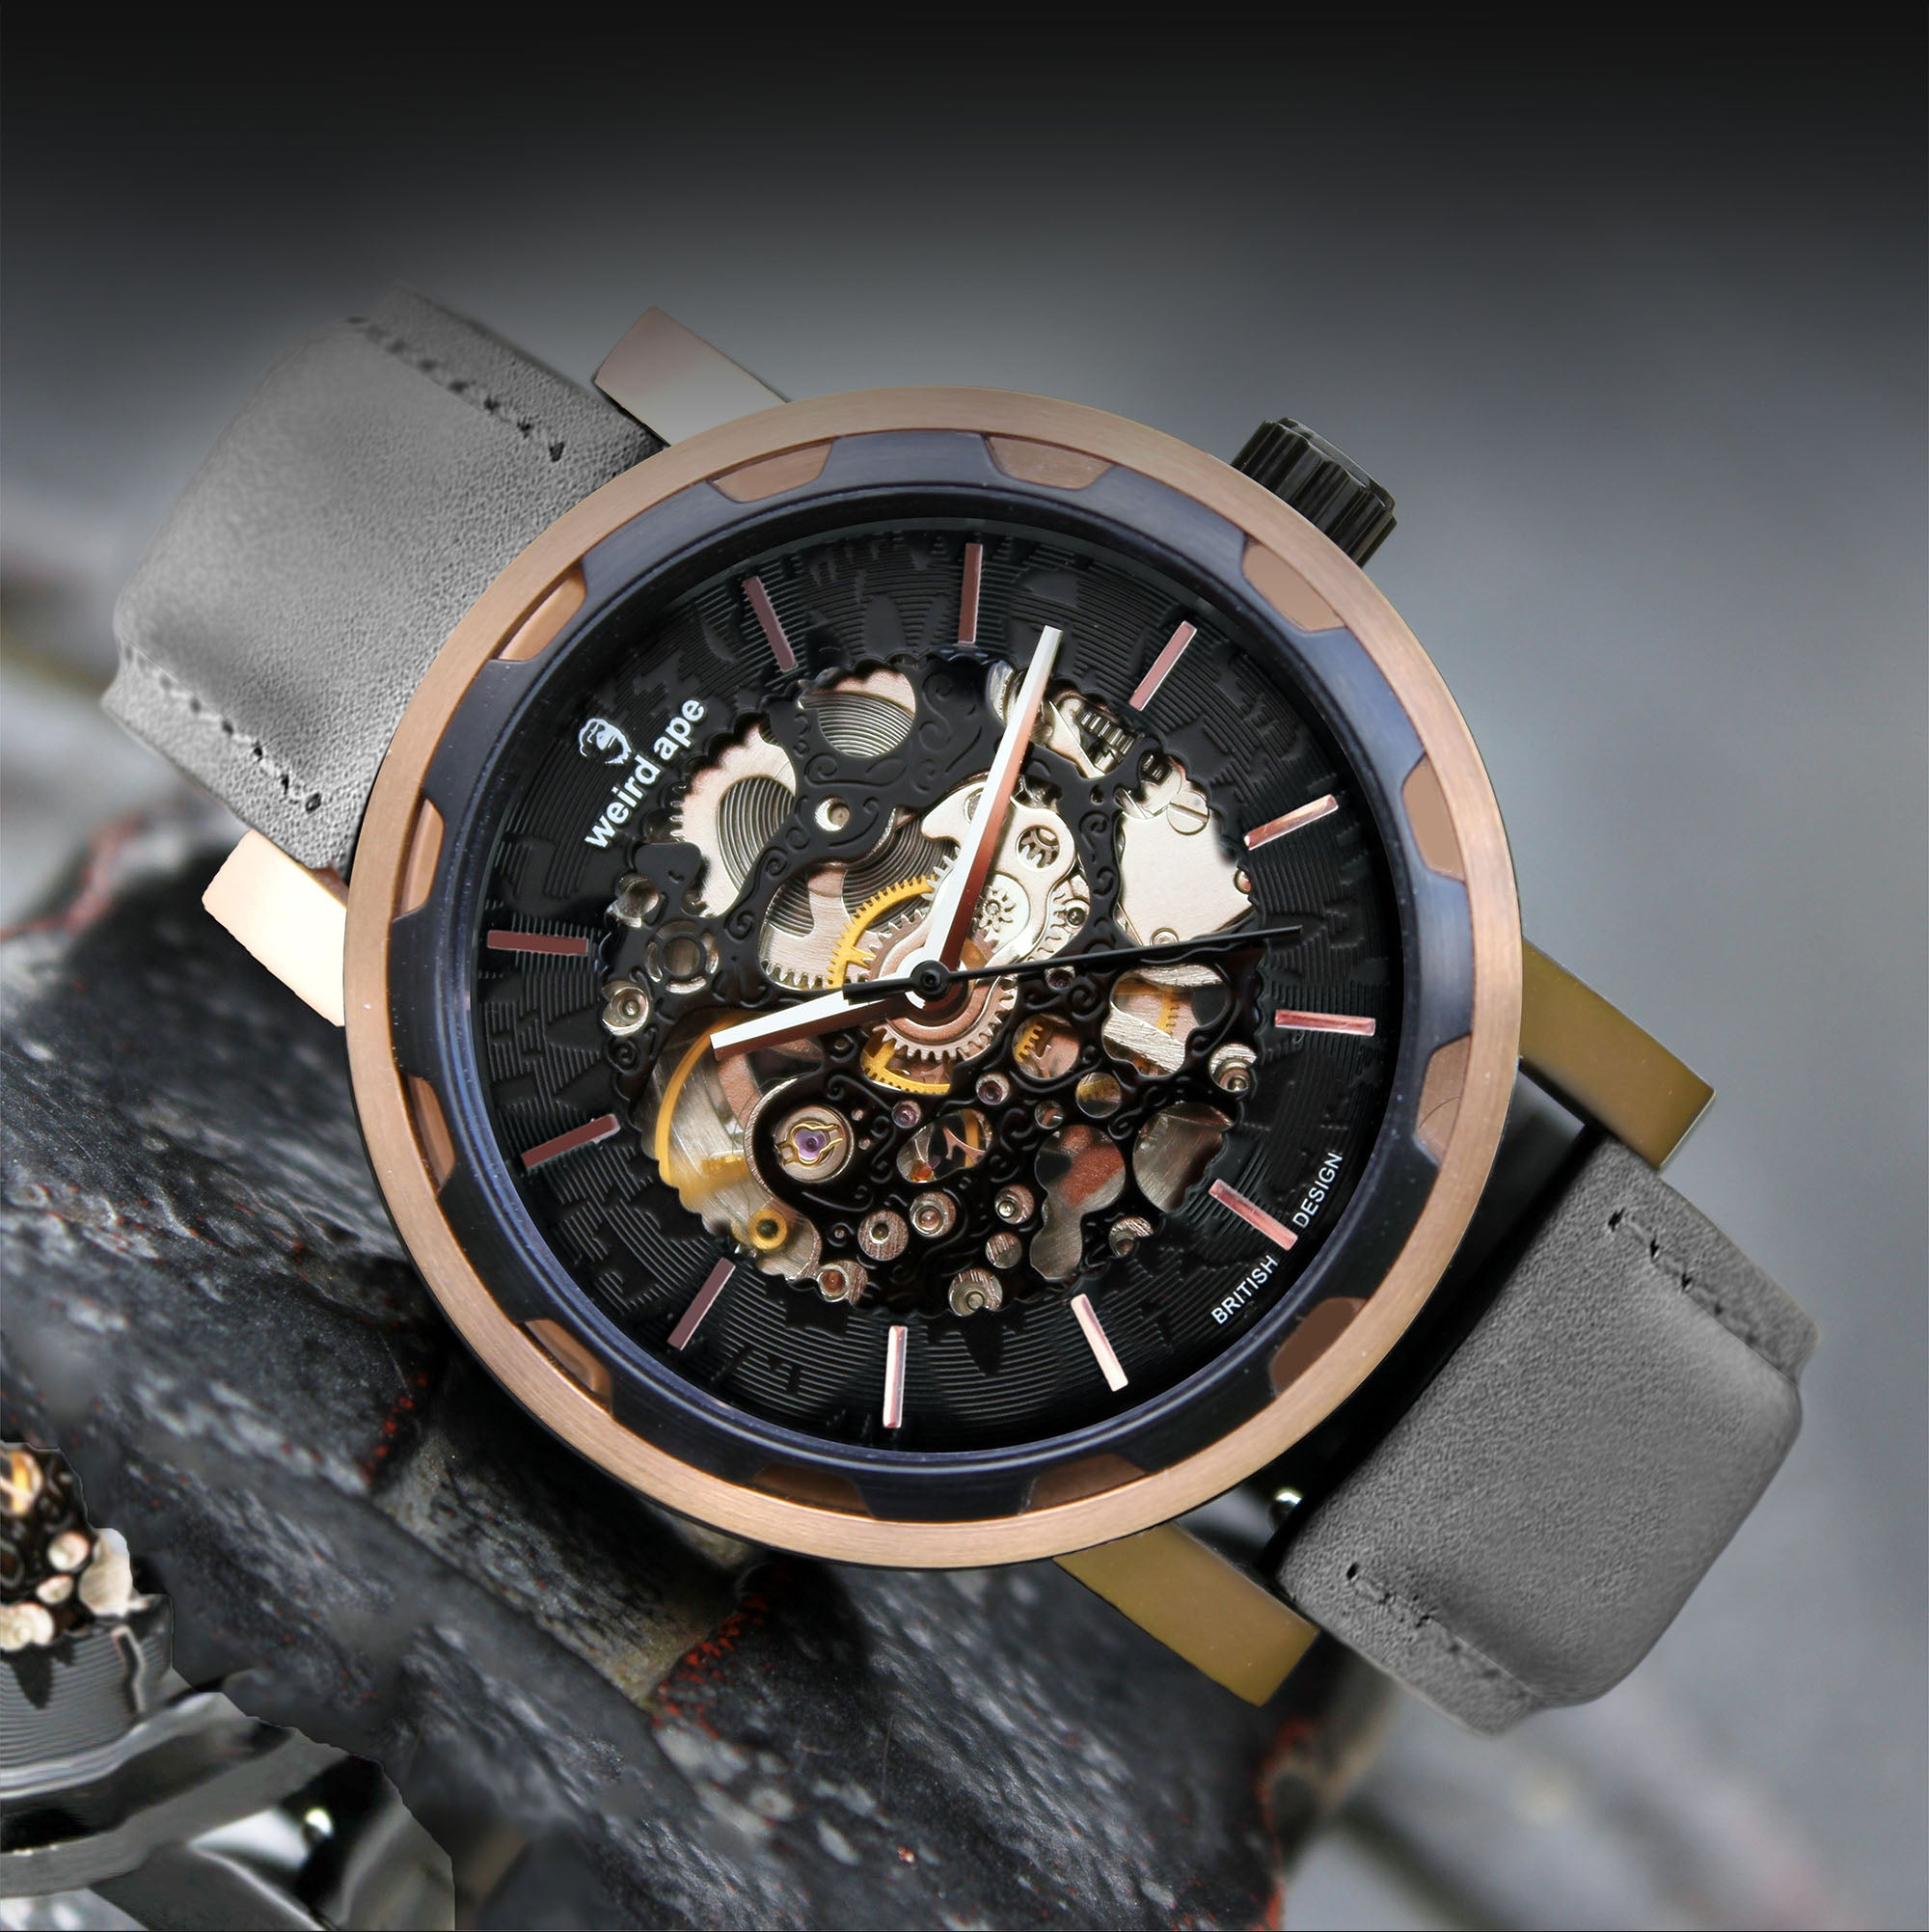 A picture of a rose gold mechanical watch with a leather grey strap.